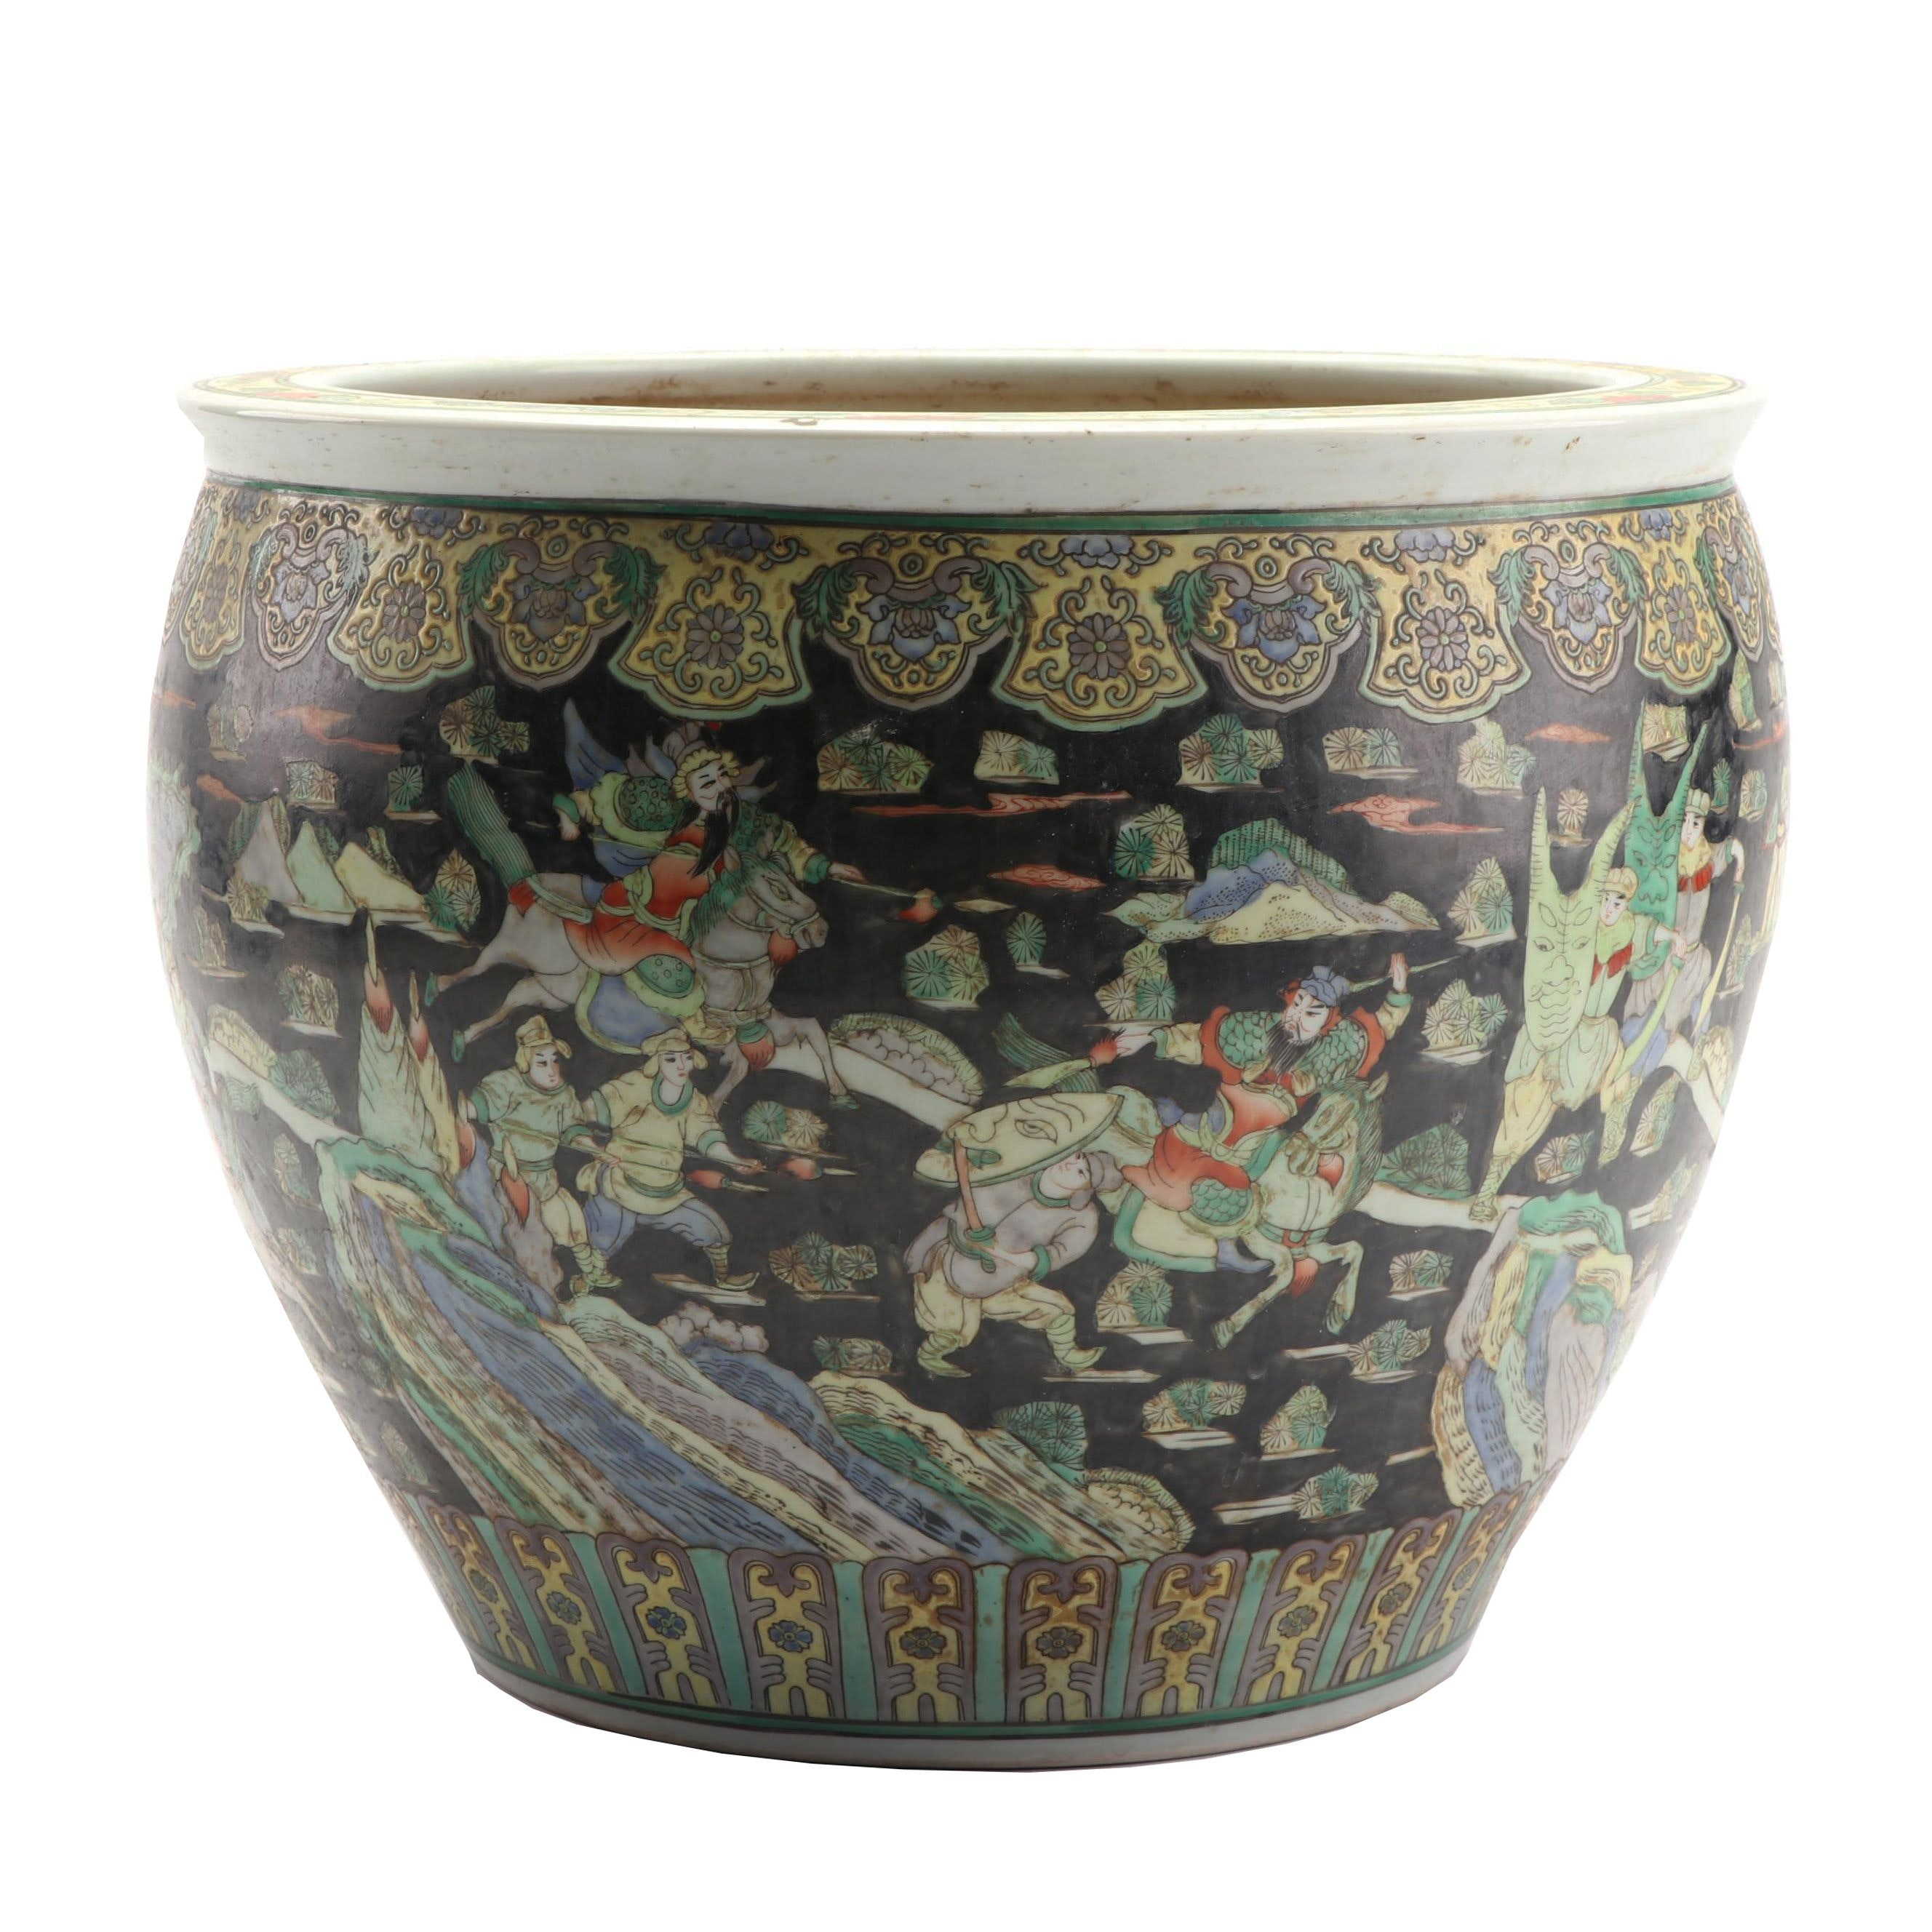 Chinese Famille Noire Style Ceramic Fishbowl Jardiniere